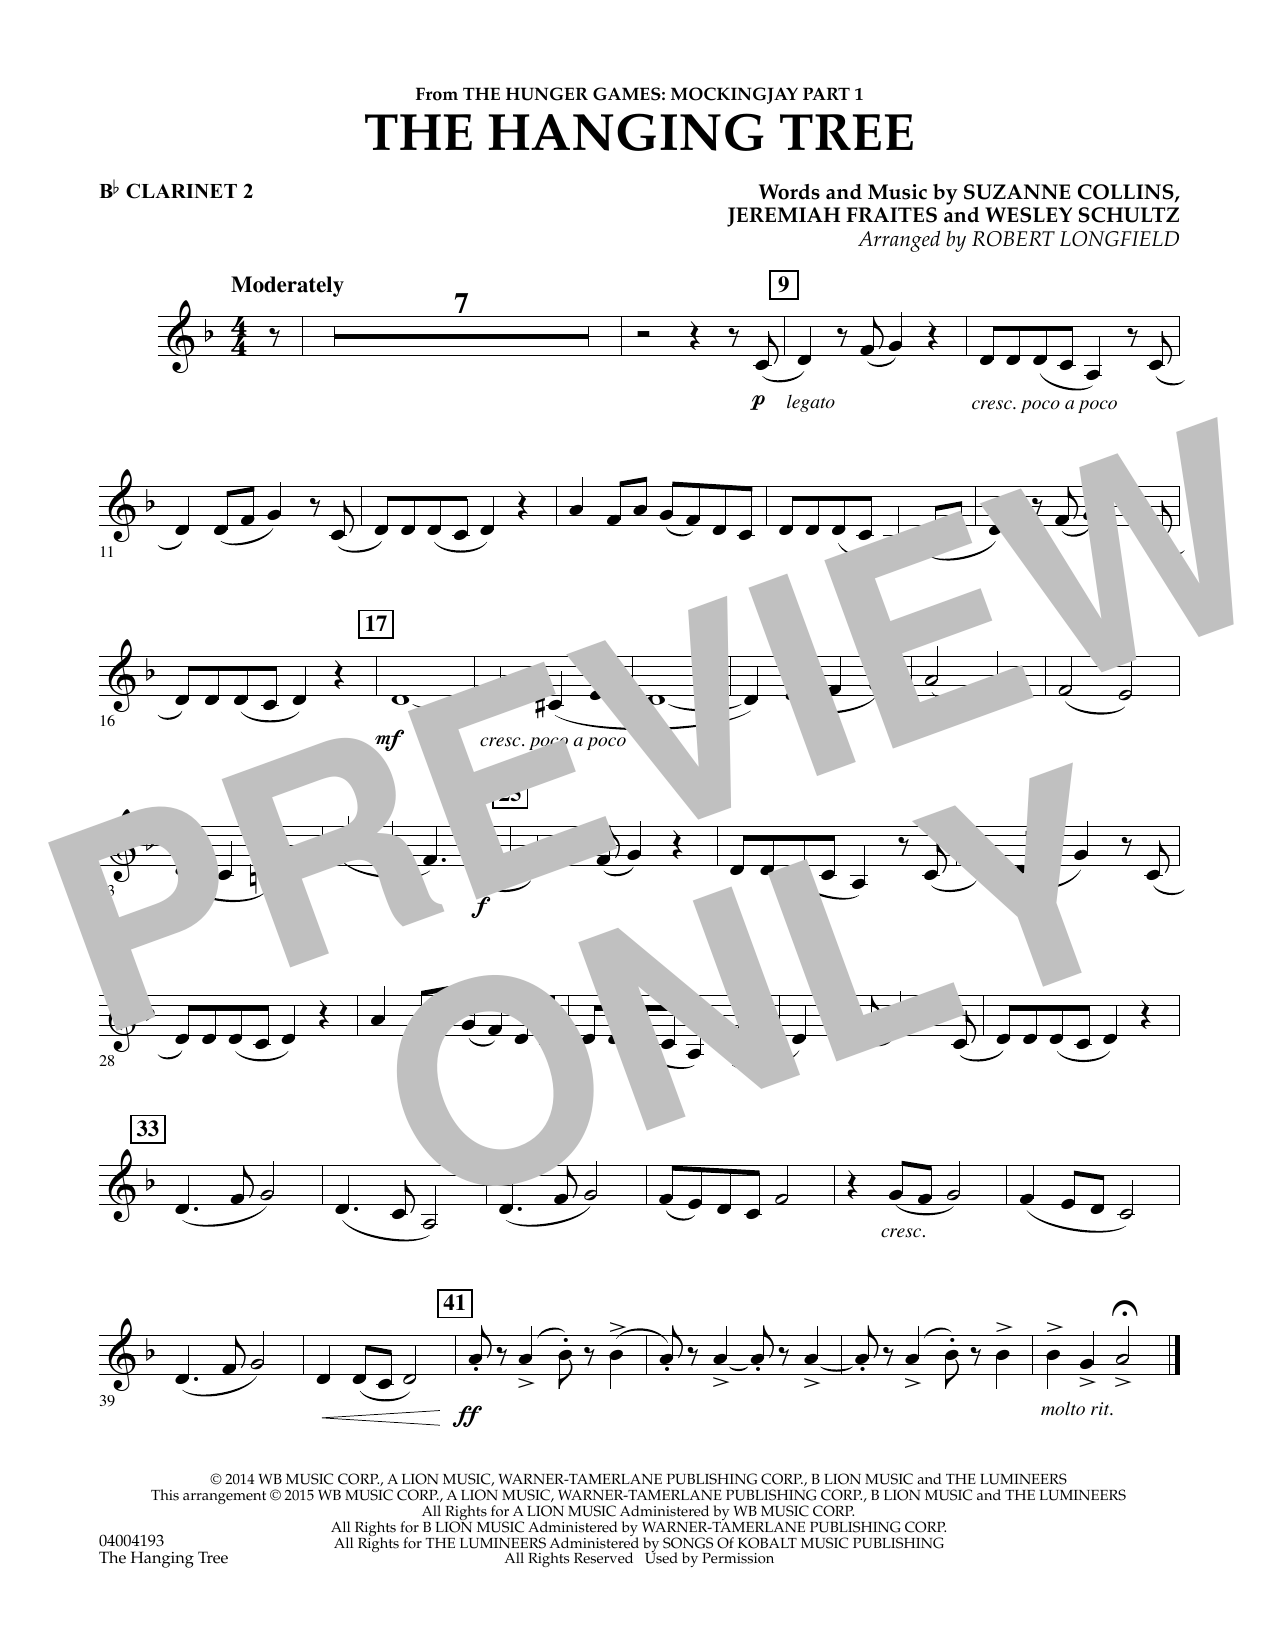 The Hanging Tree (from The Hunger Games: Mockingjay Part 1) - Bb Clarinet 2 (Concert Band)